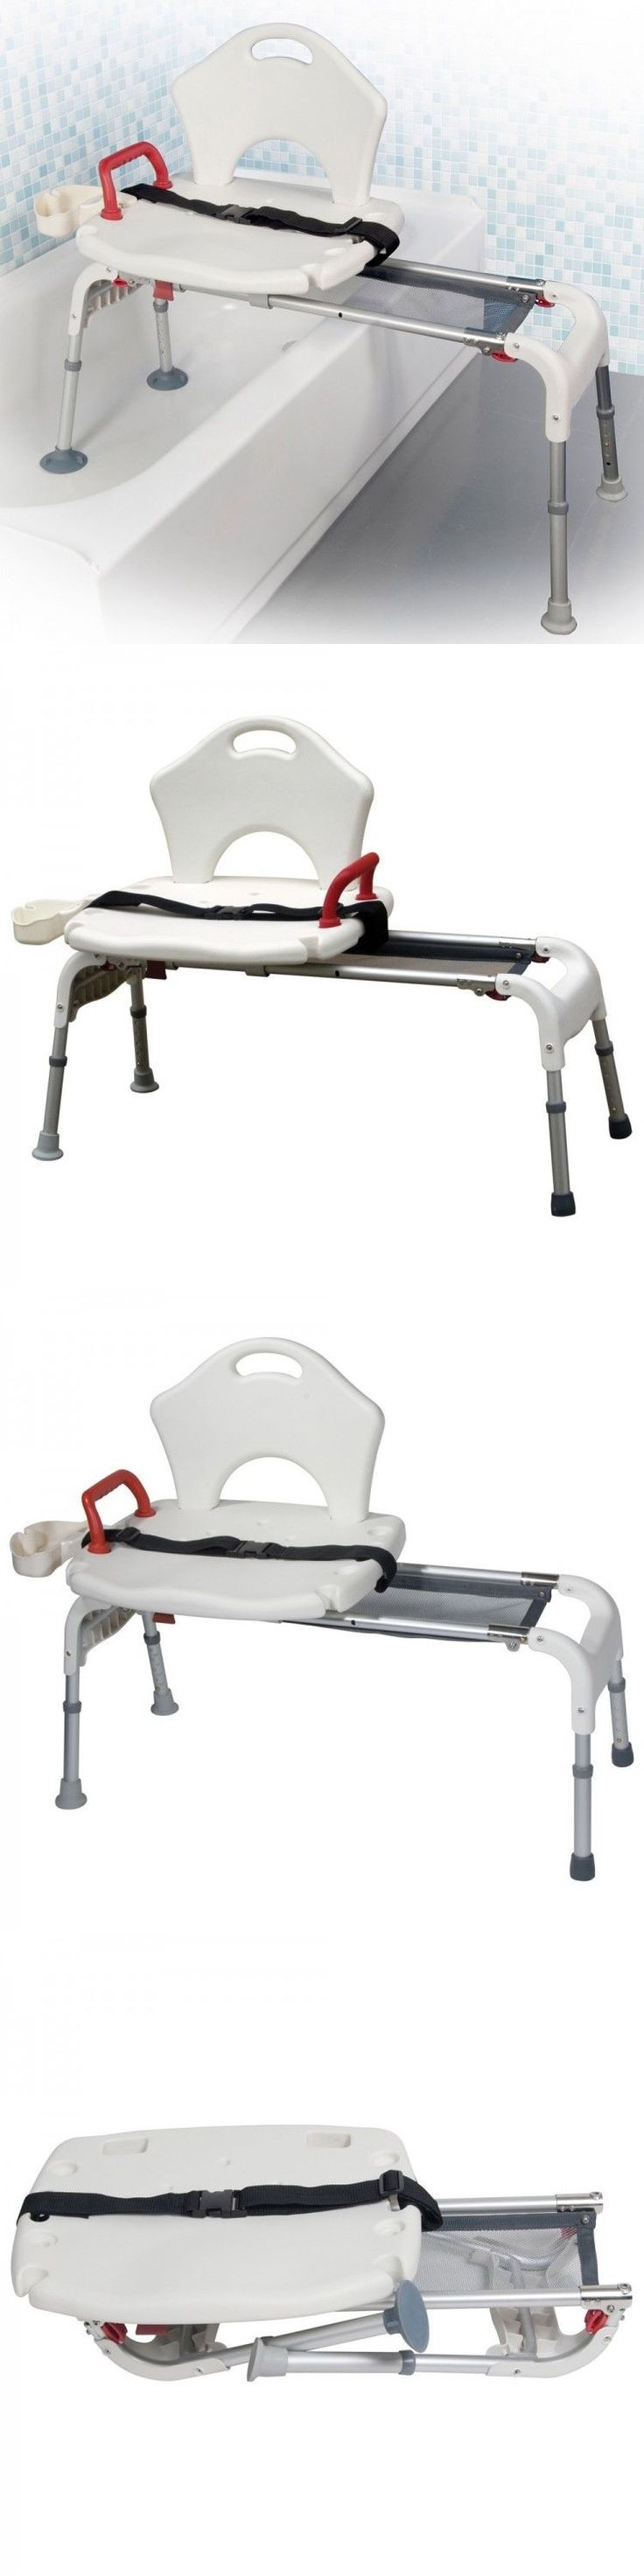 Transfer Boards and Benches  Sliding Transfer Tub Bench Folding Chair  Shower Bath Aid Adjustable Elderly. 17 best ideas about Bath Chair For Elderly on Pinterest   Handicap